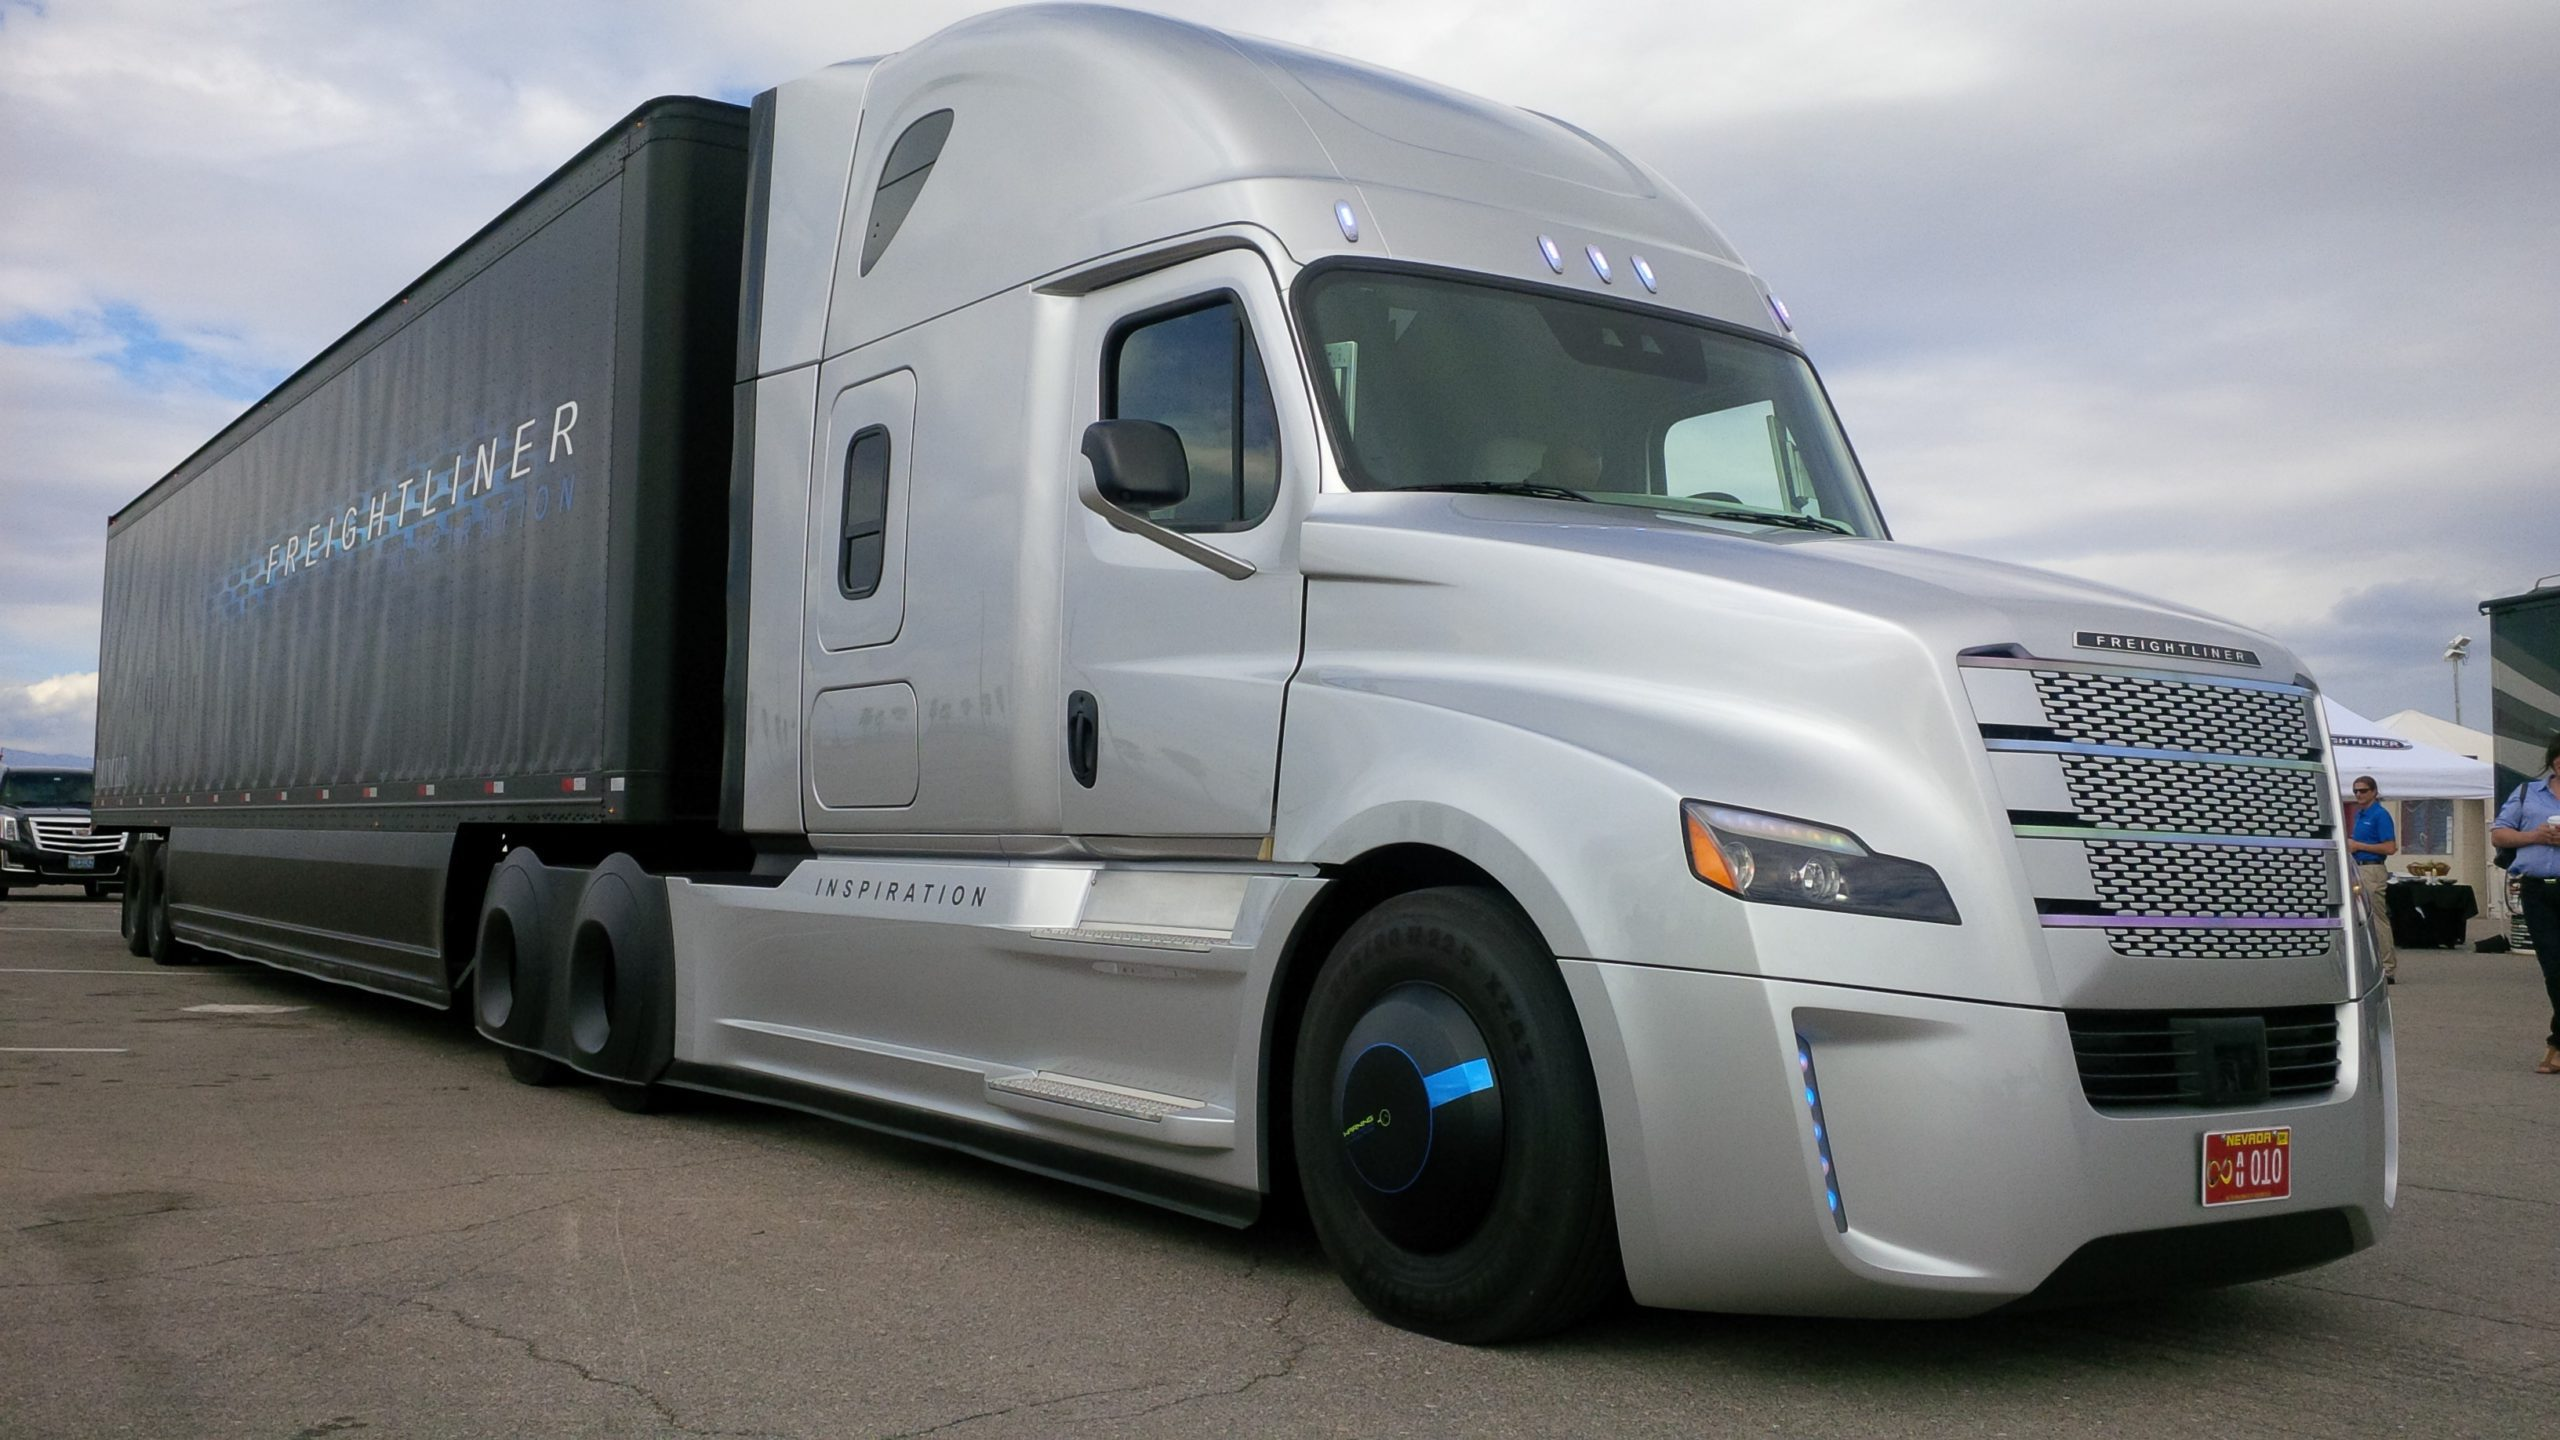 Co-Driving and Autonomous Trucking